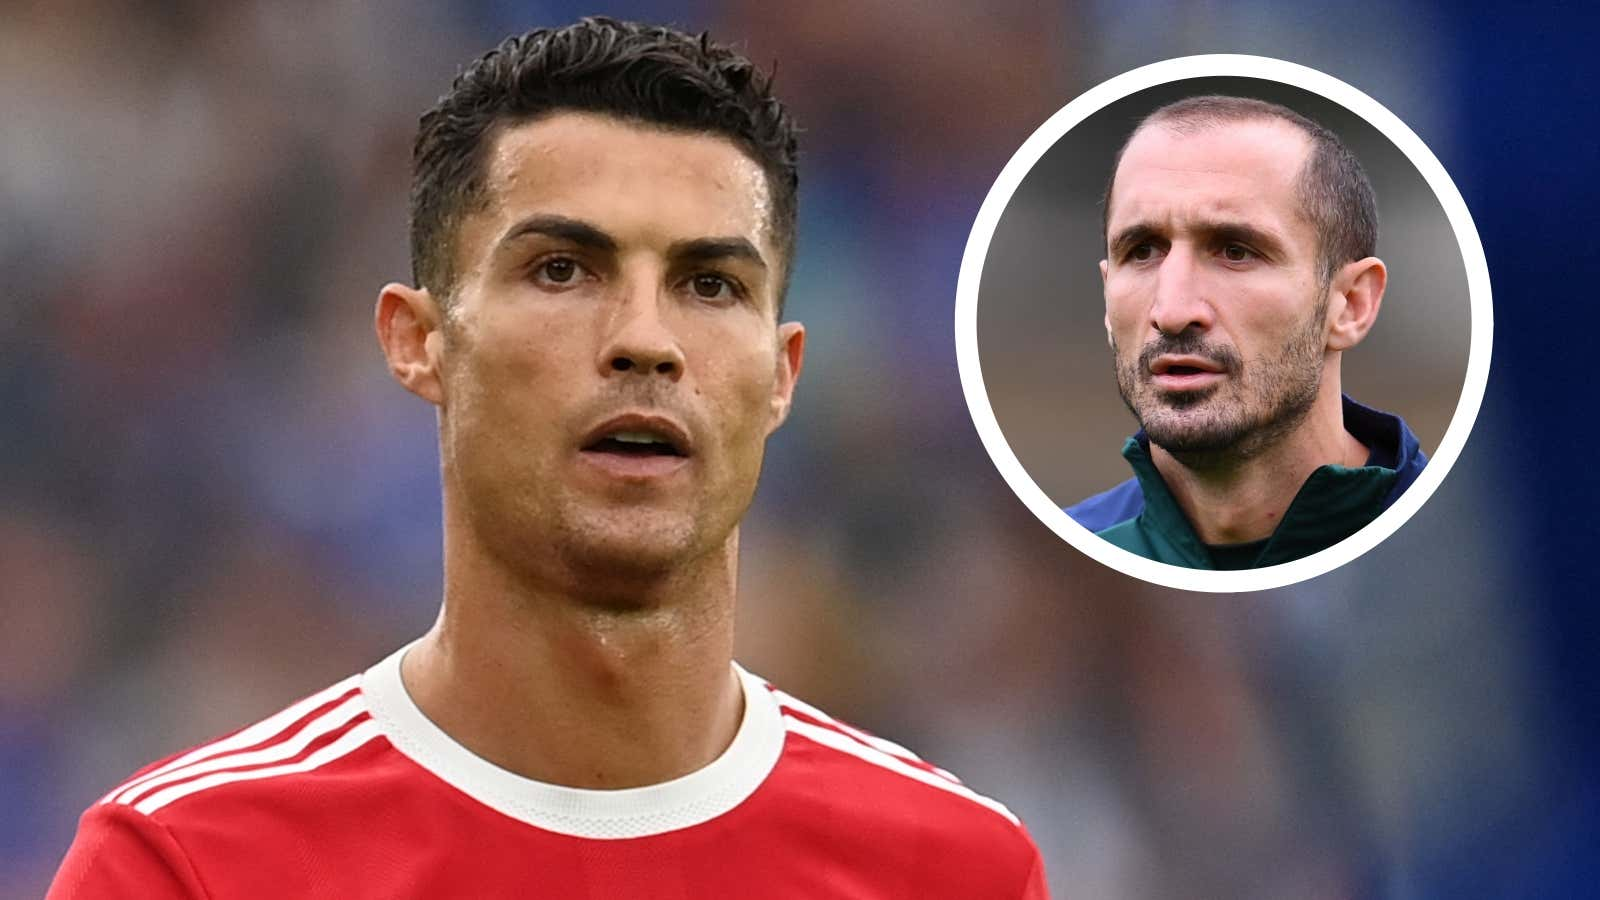 'It would've been better if Ronaldo had left earlier' – Chiellini admits Juventus 'paid' for Man Utd transfer | Goal.com